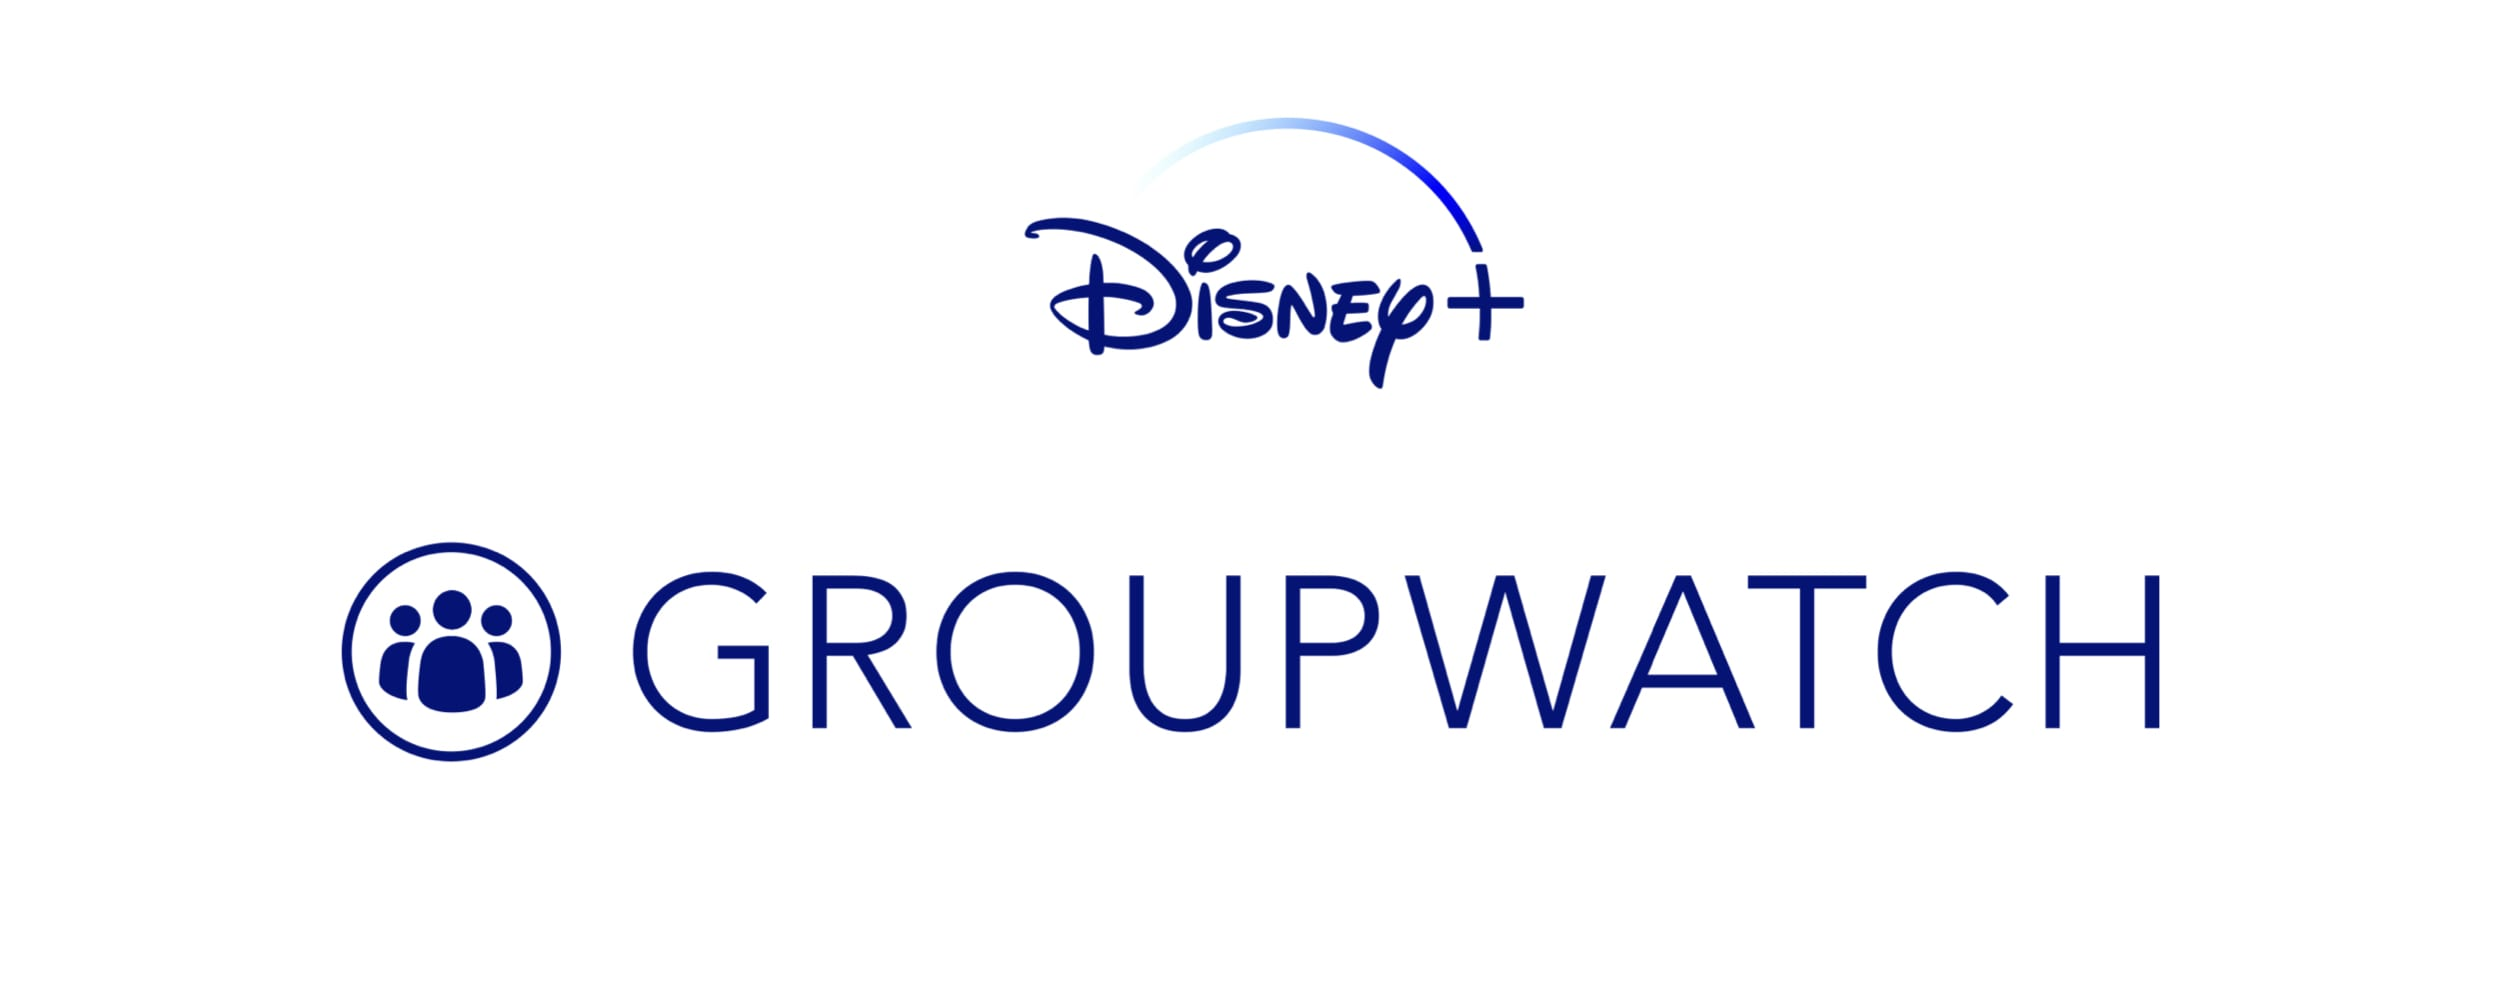 Disney+ Introduces GroupWatch